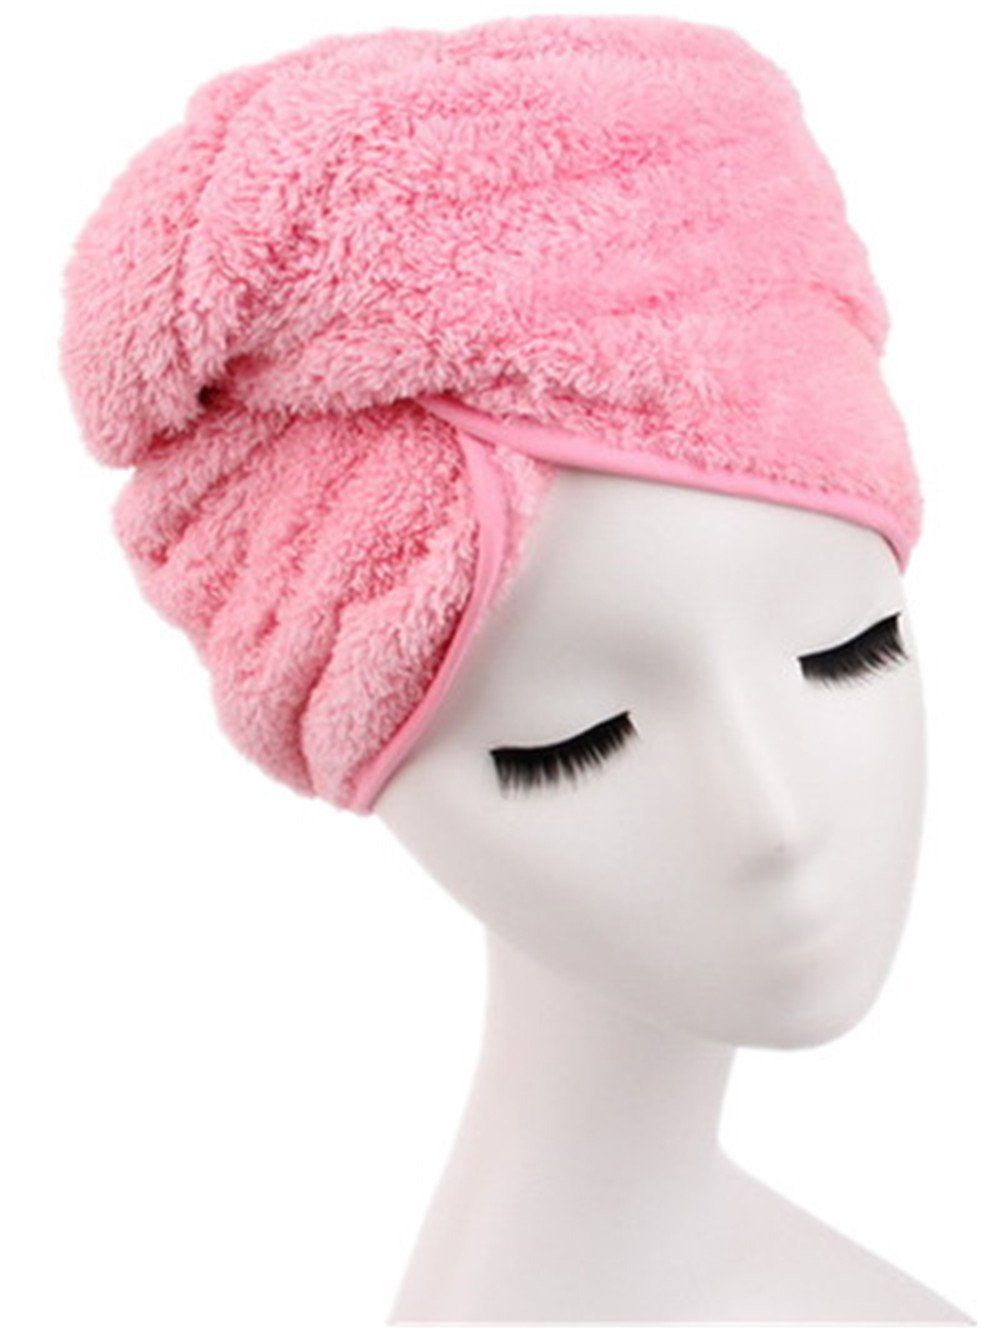 f46b96135d0 Moolecole Super Absorbent Microfiber Hair Dry Towel Thickened Shower Cap  Hair Turban Quick Dry Hat Cap Pink * Learn more by visiting the image link.